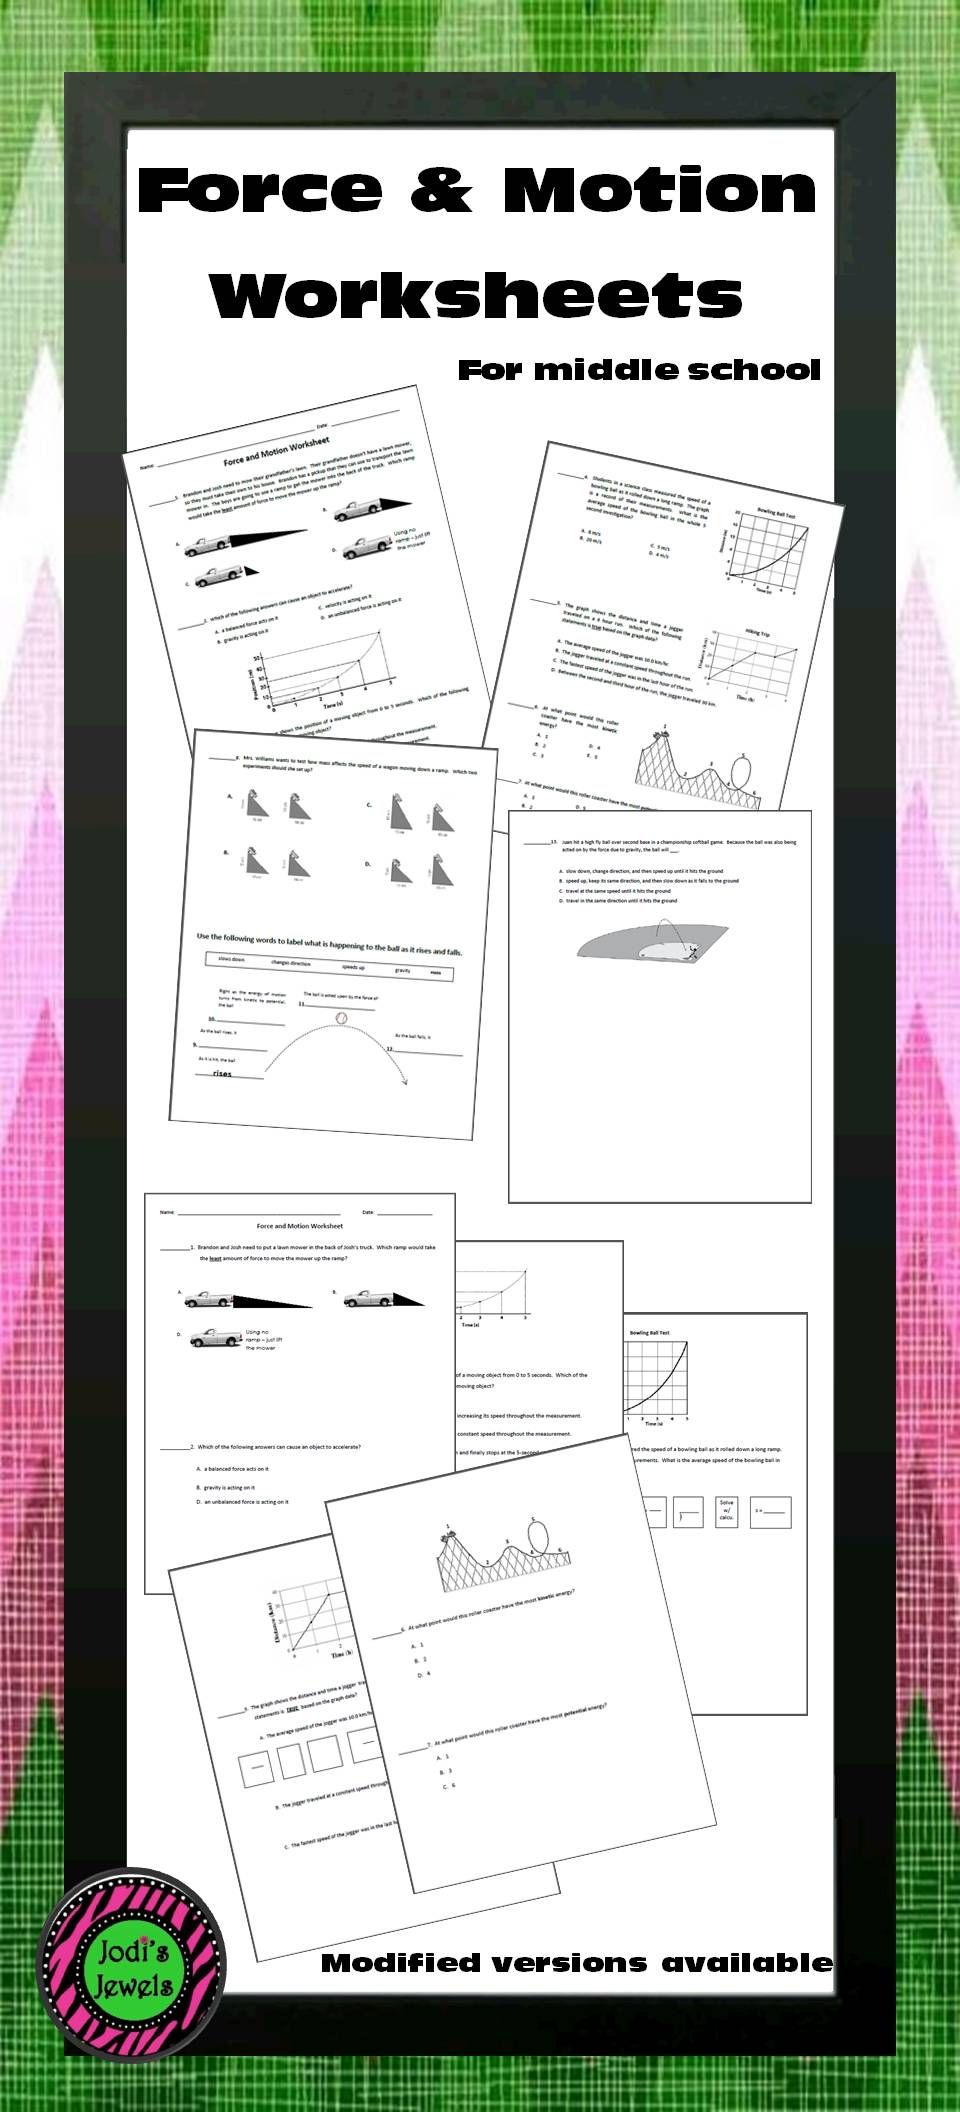 Worksheets Force And Motion Worksheets For 5th Grade force and motion worksheet graphs worksheets students for middle school include interpreting data calculating speed average